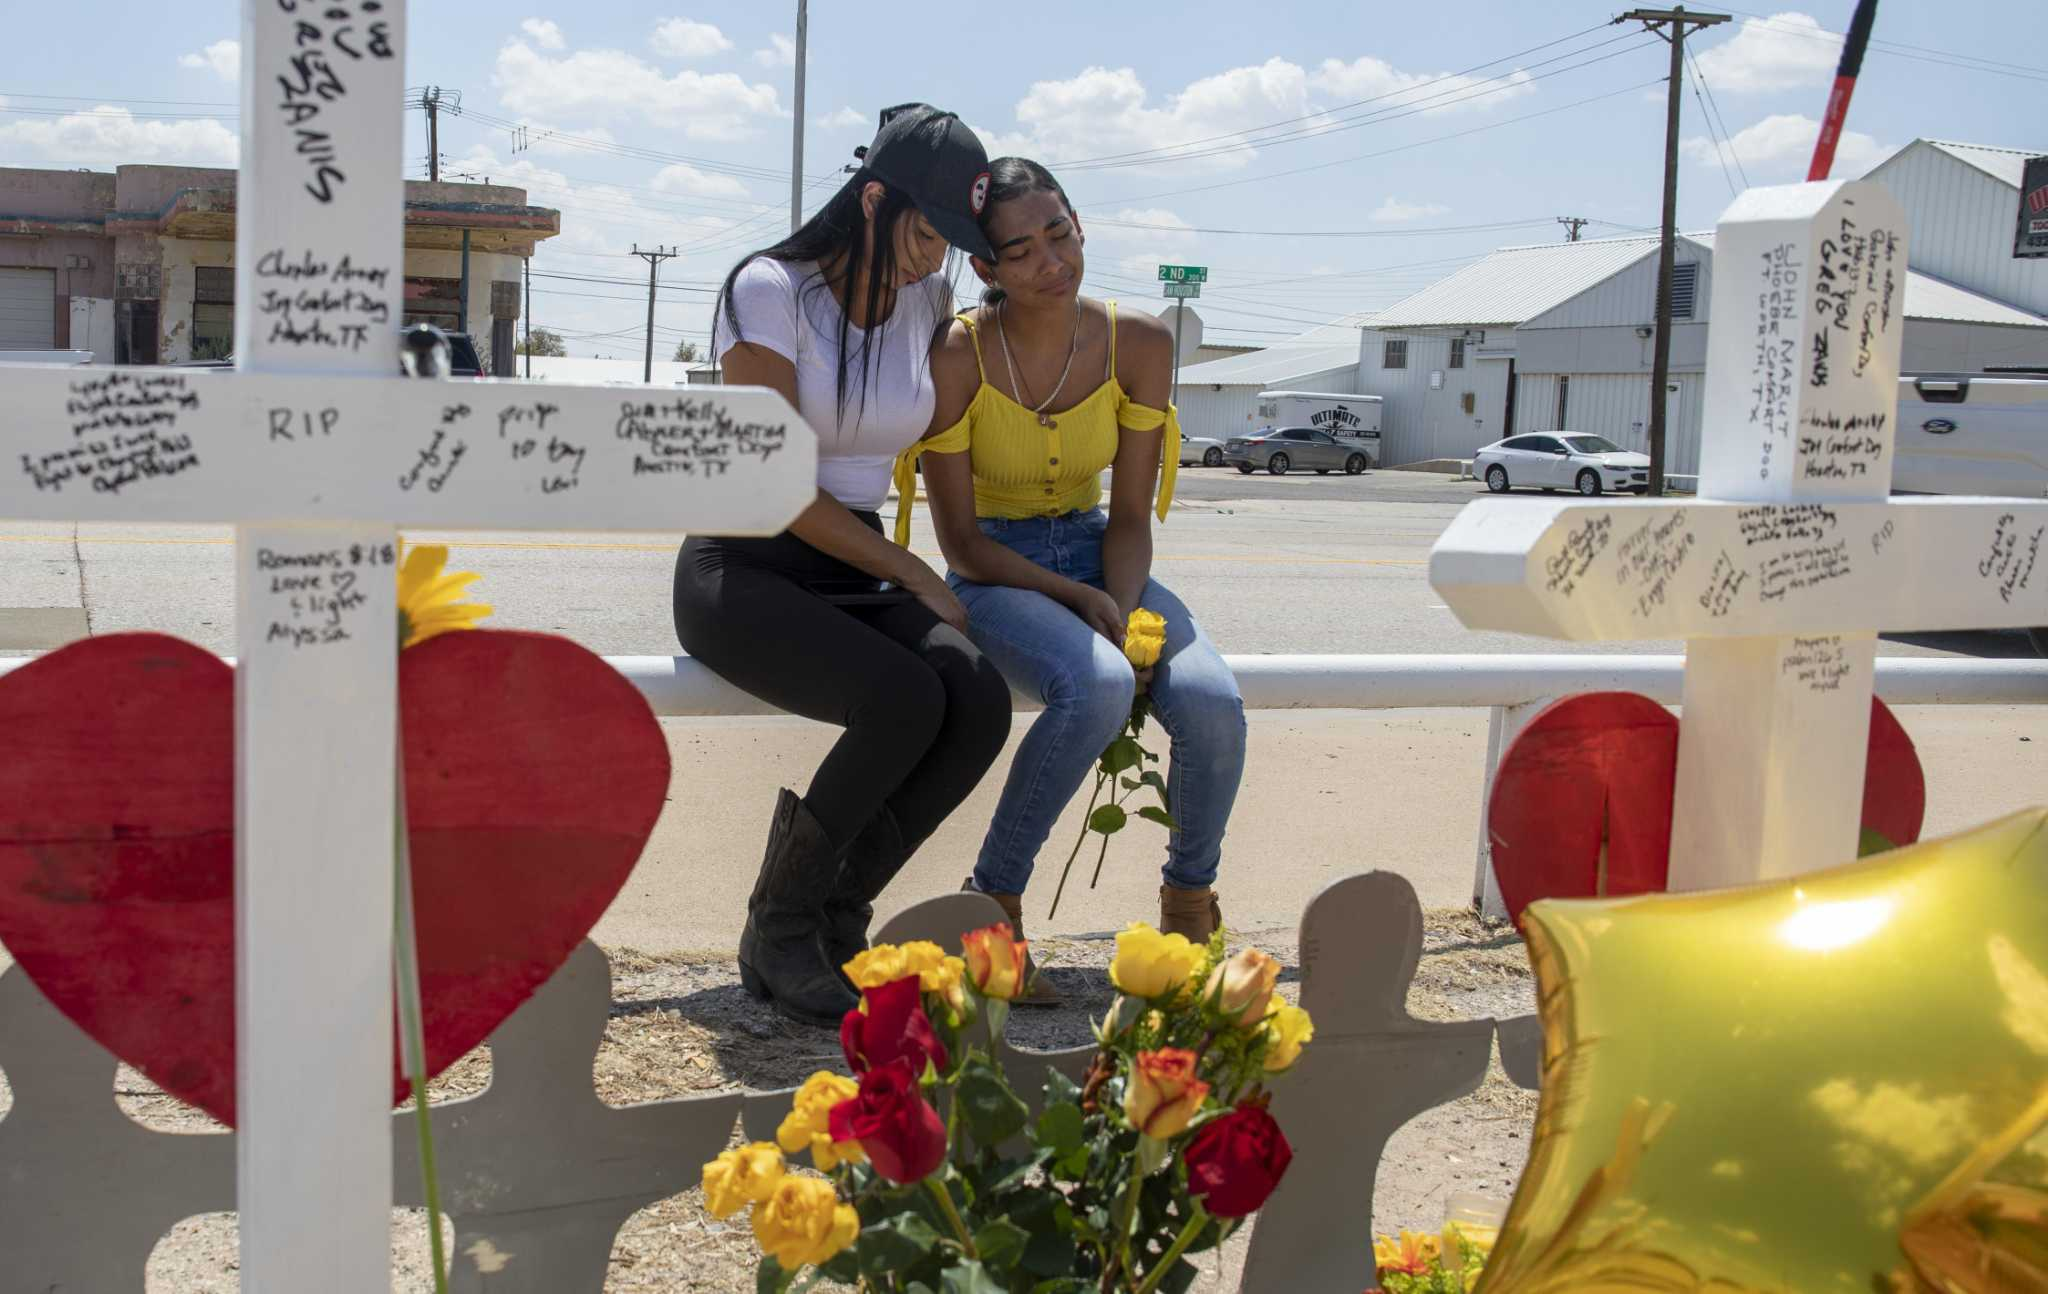 From Midland To Odessa Shooter Cut A 64 Minute Path Of Terror